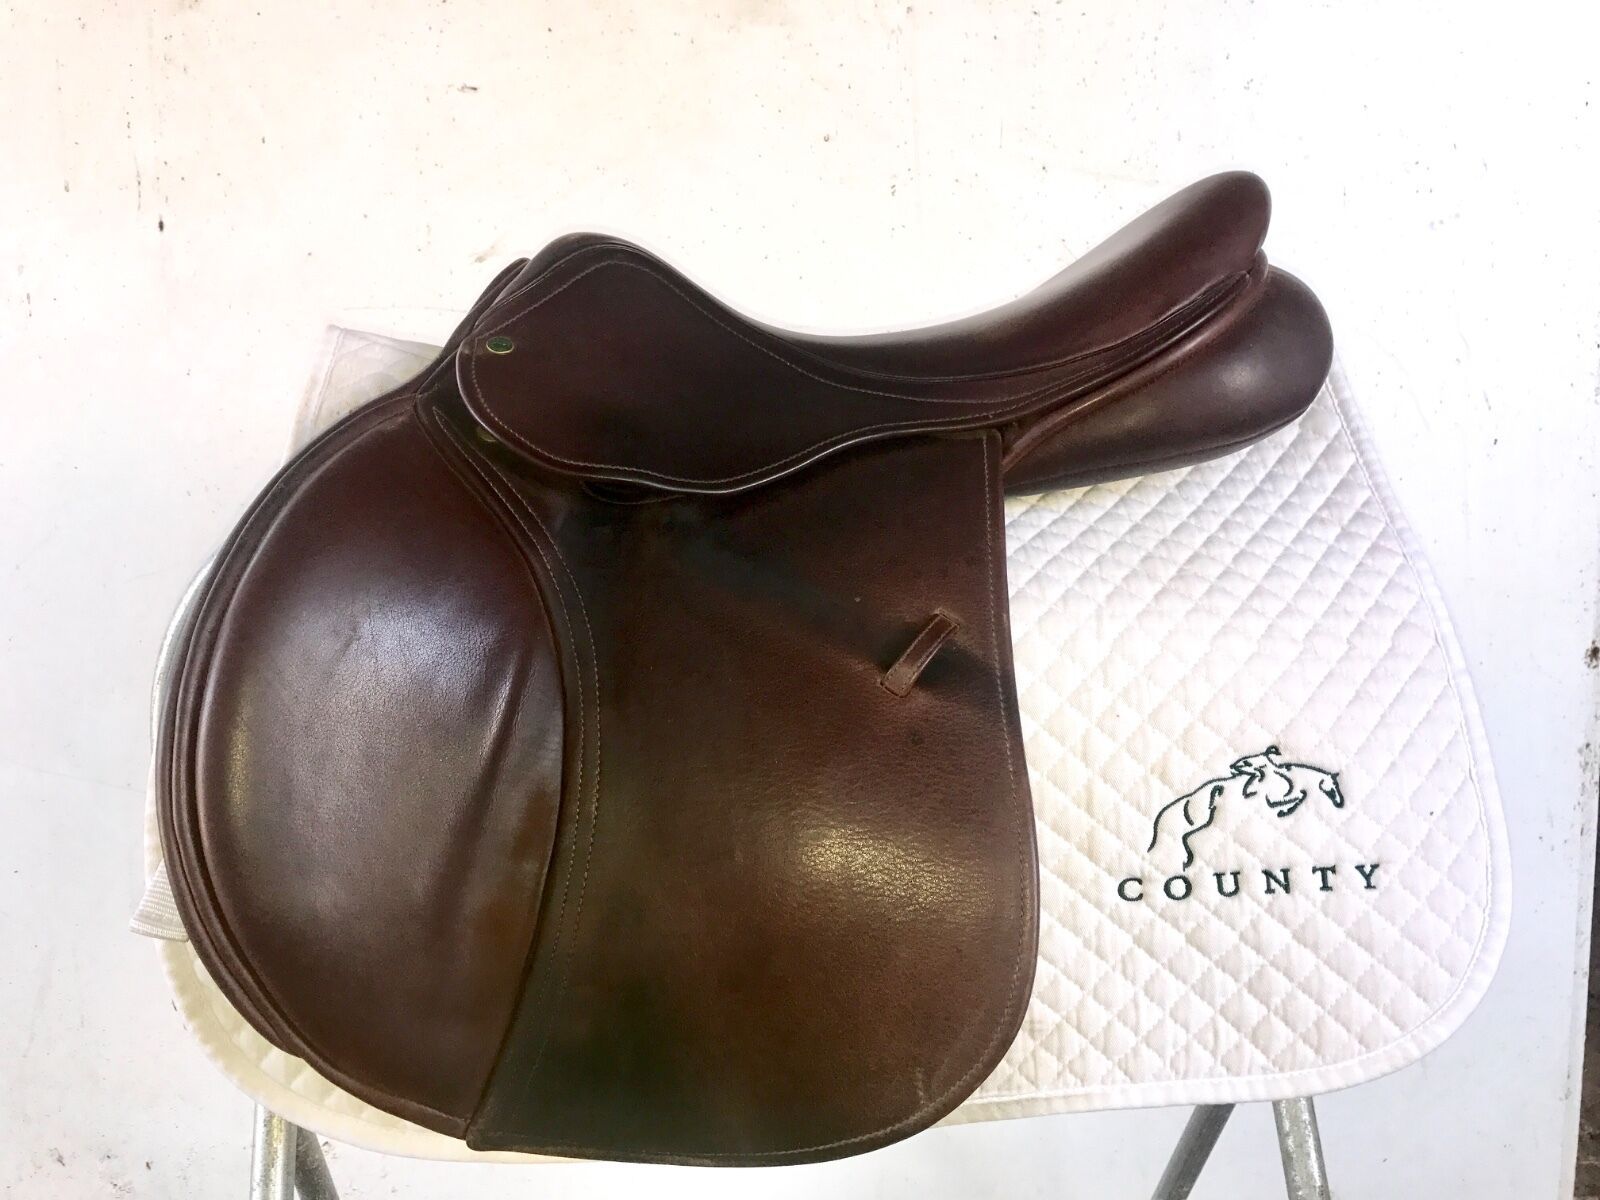 County Saddlery Solution 17 inch Saddle. Medium Sensation tree. Great condition